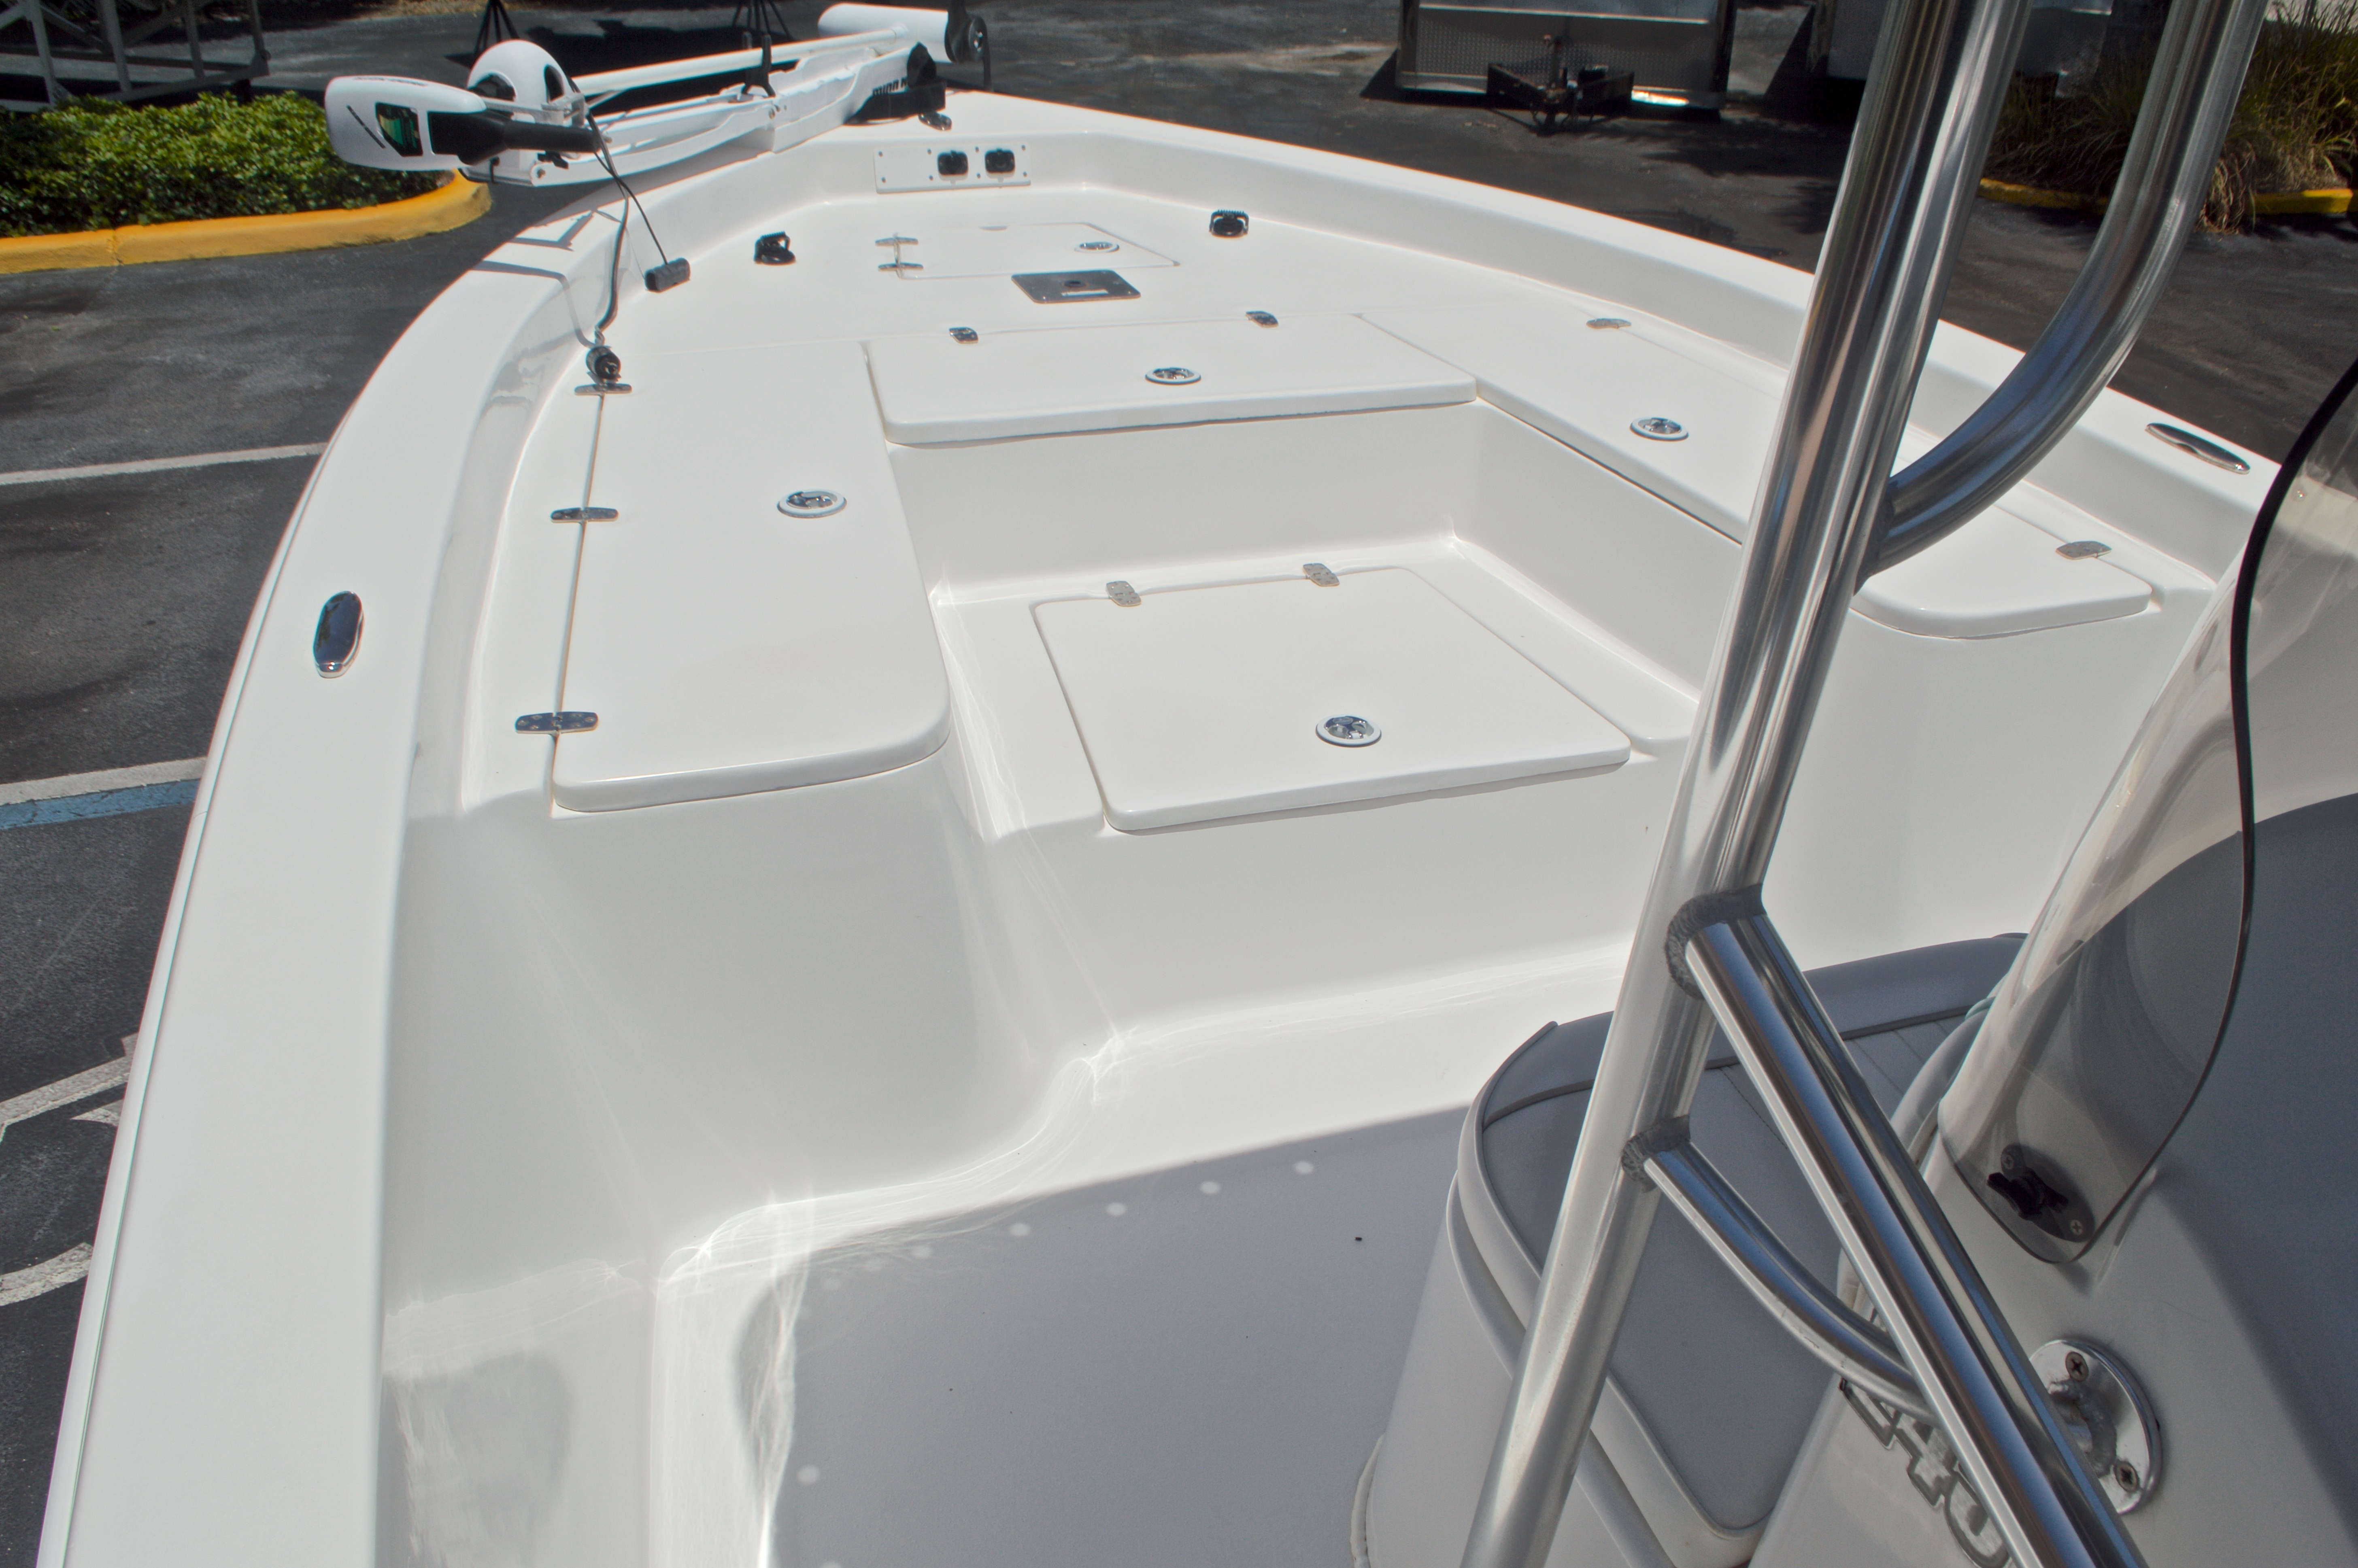 Thumbnail 46 for Used 2005 Sea Chaser 245 Bay Runner LX boat for sale in West Palm Beach, FL